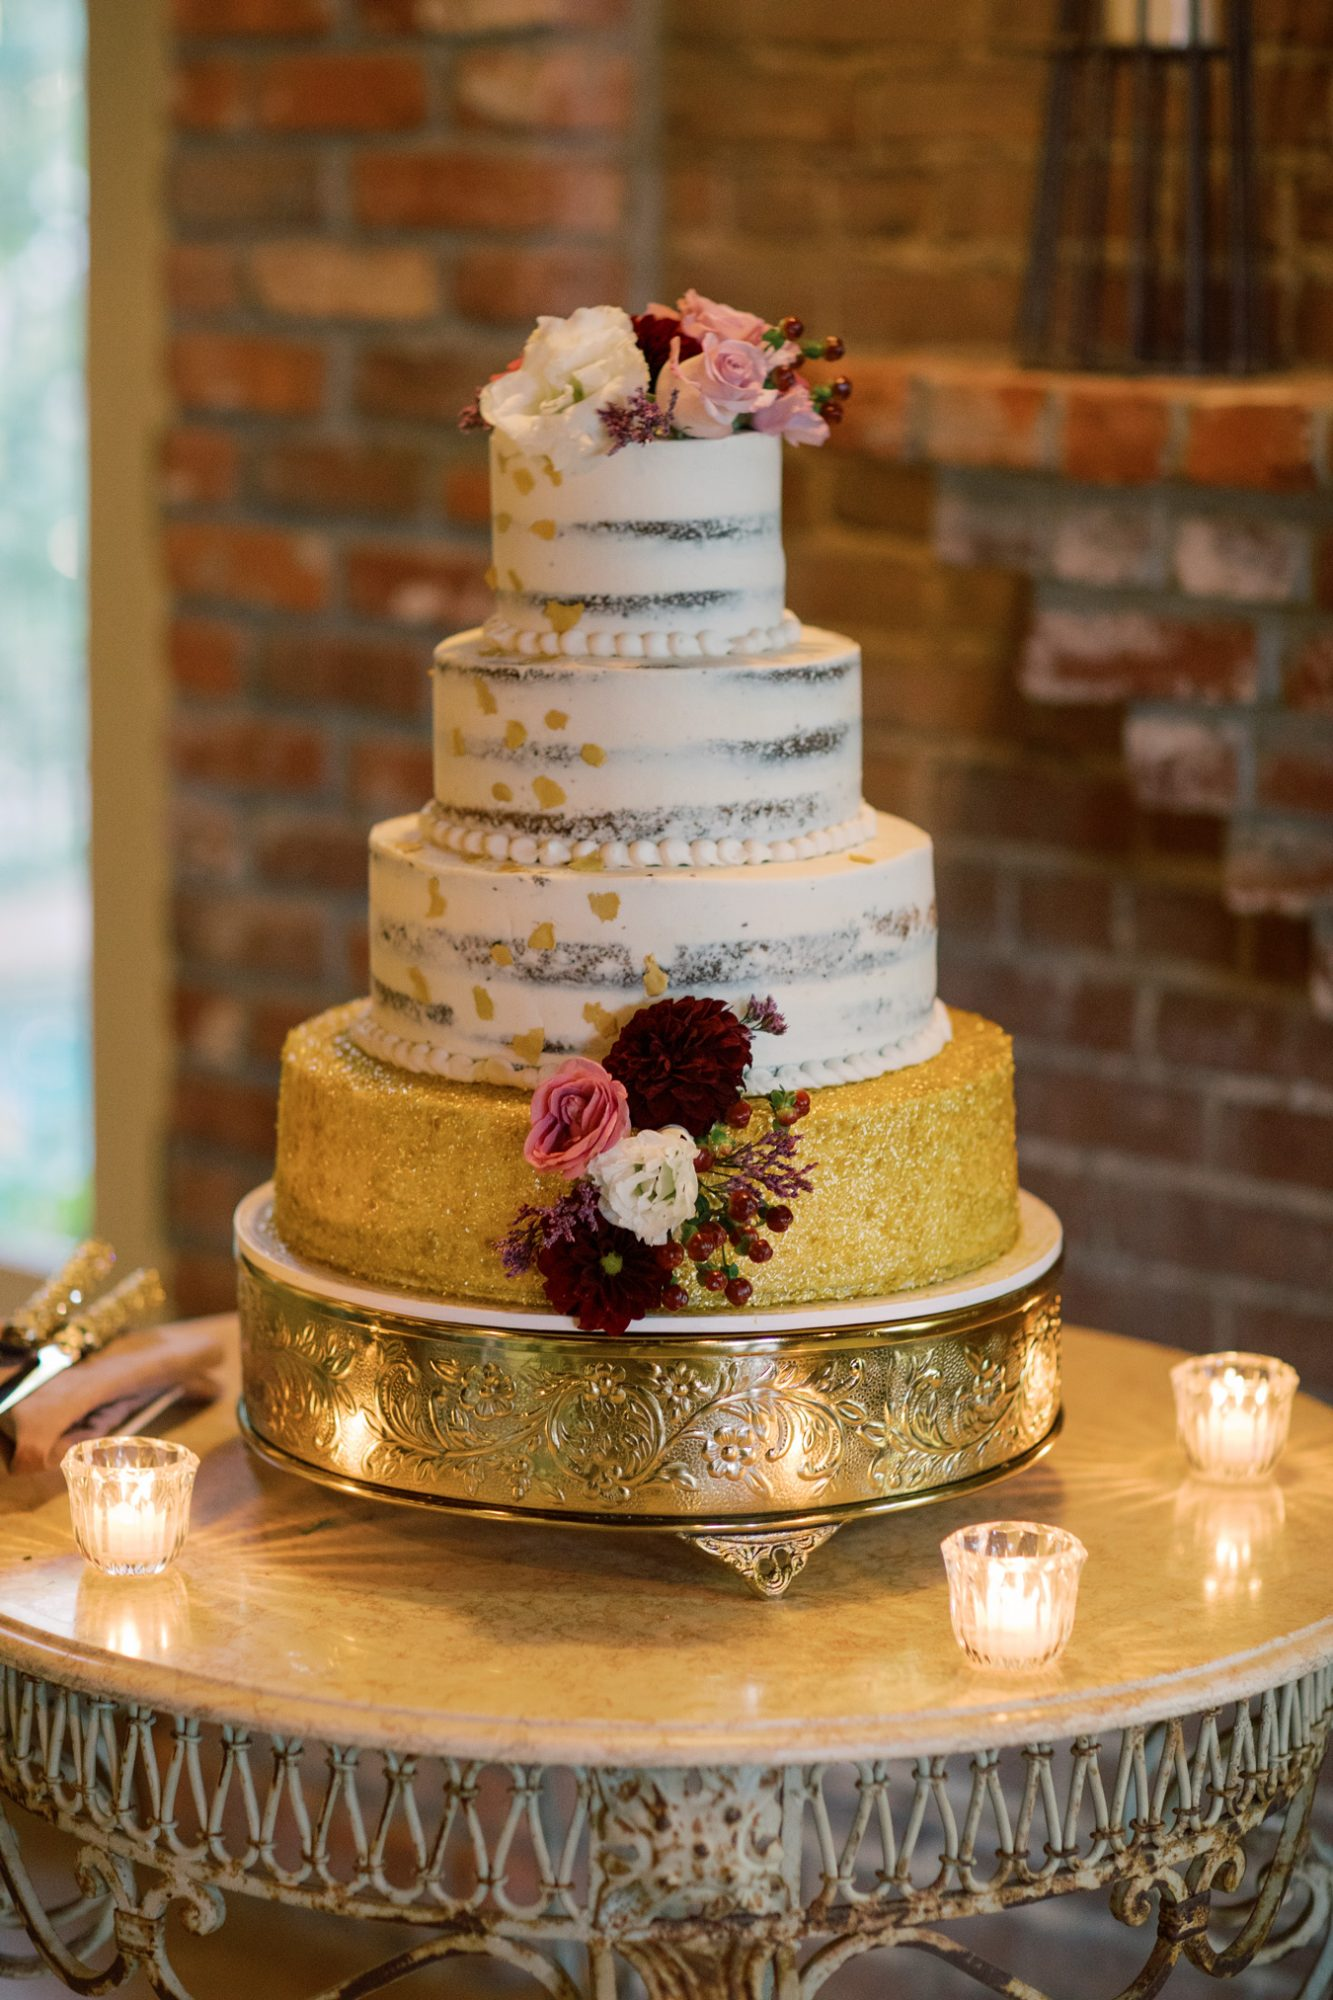 4-tier wedding cake with gold glitter base layer